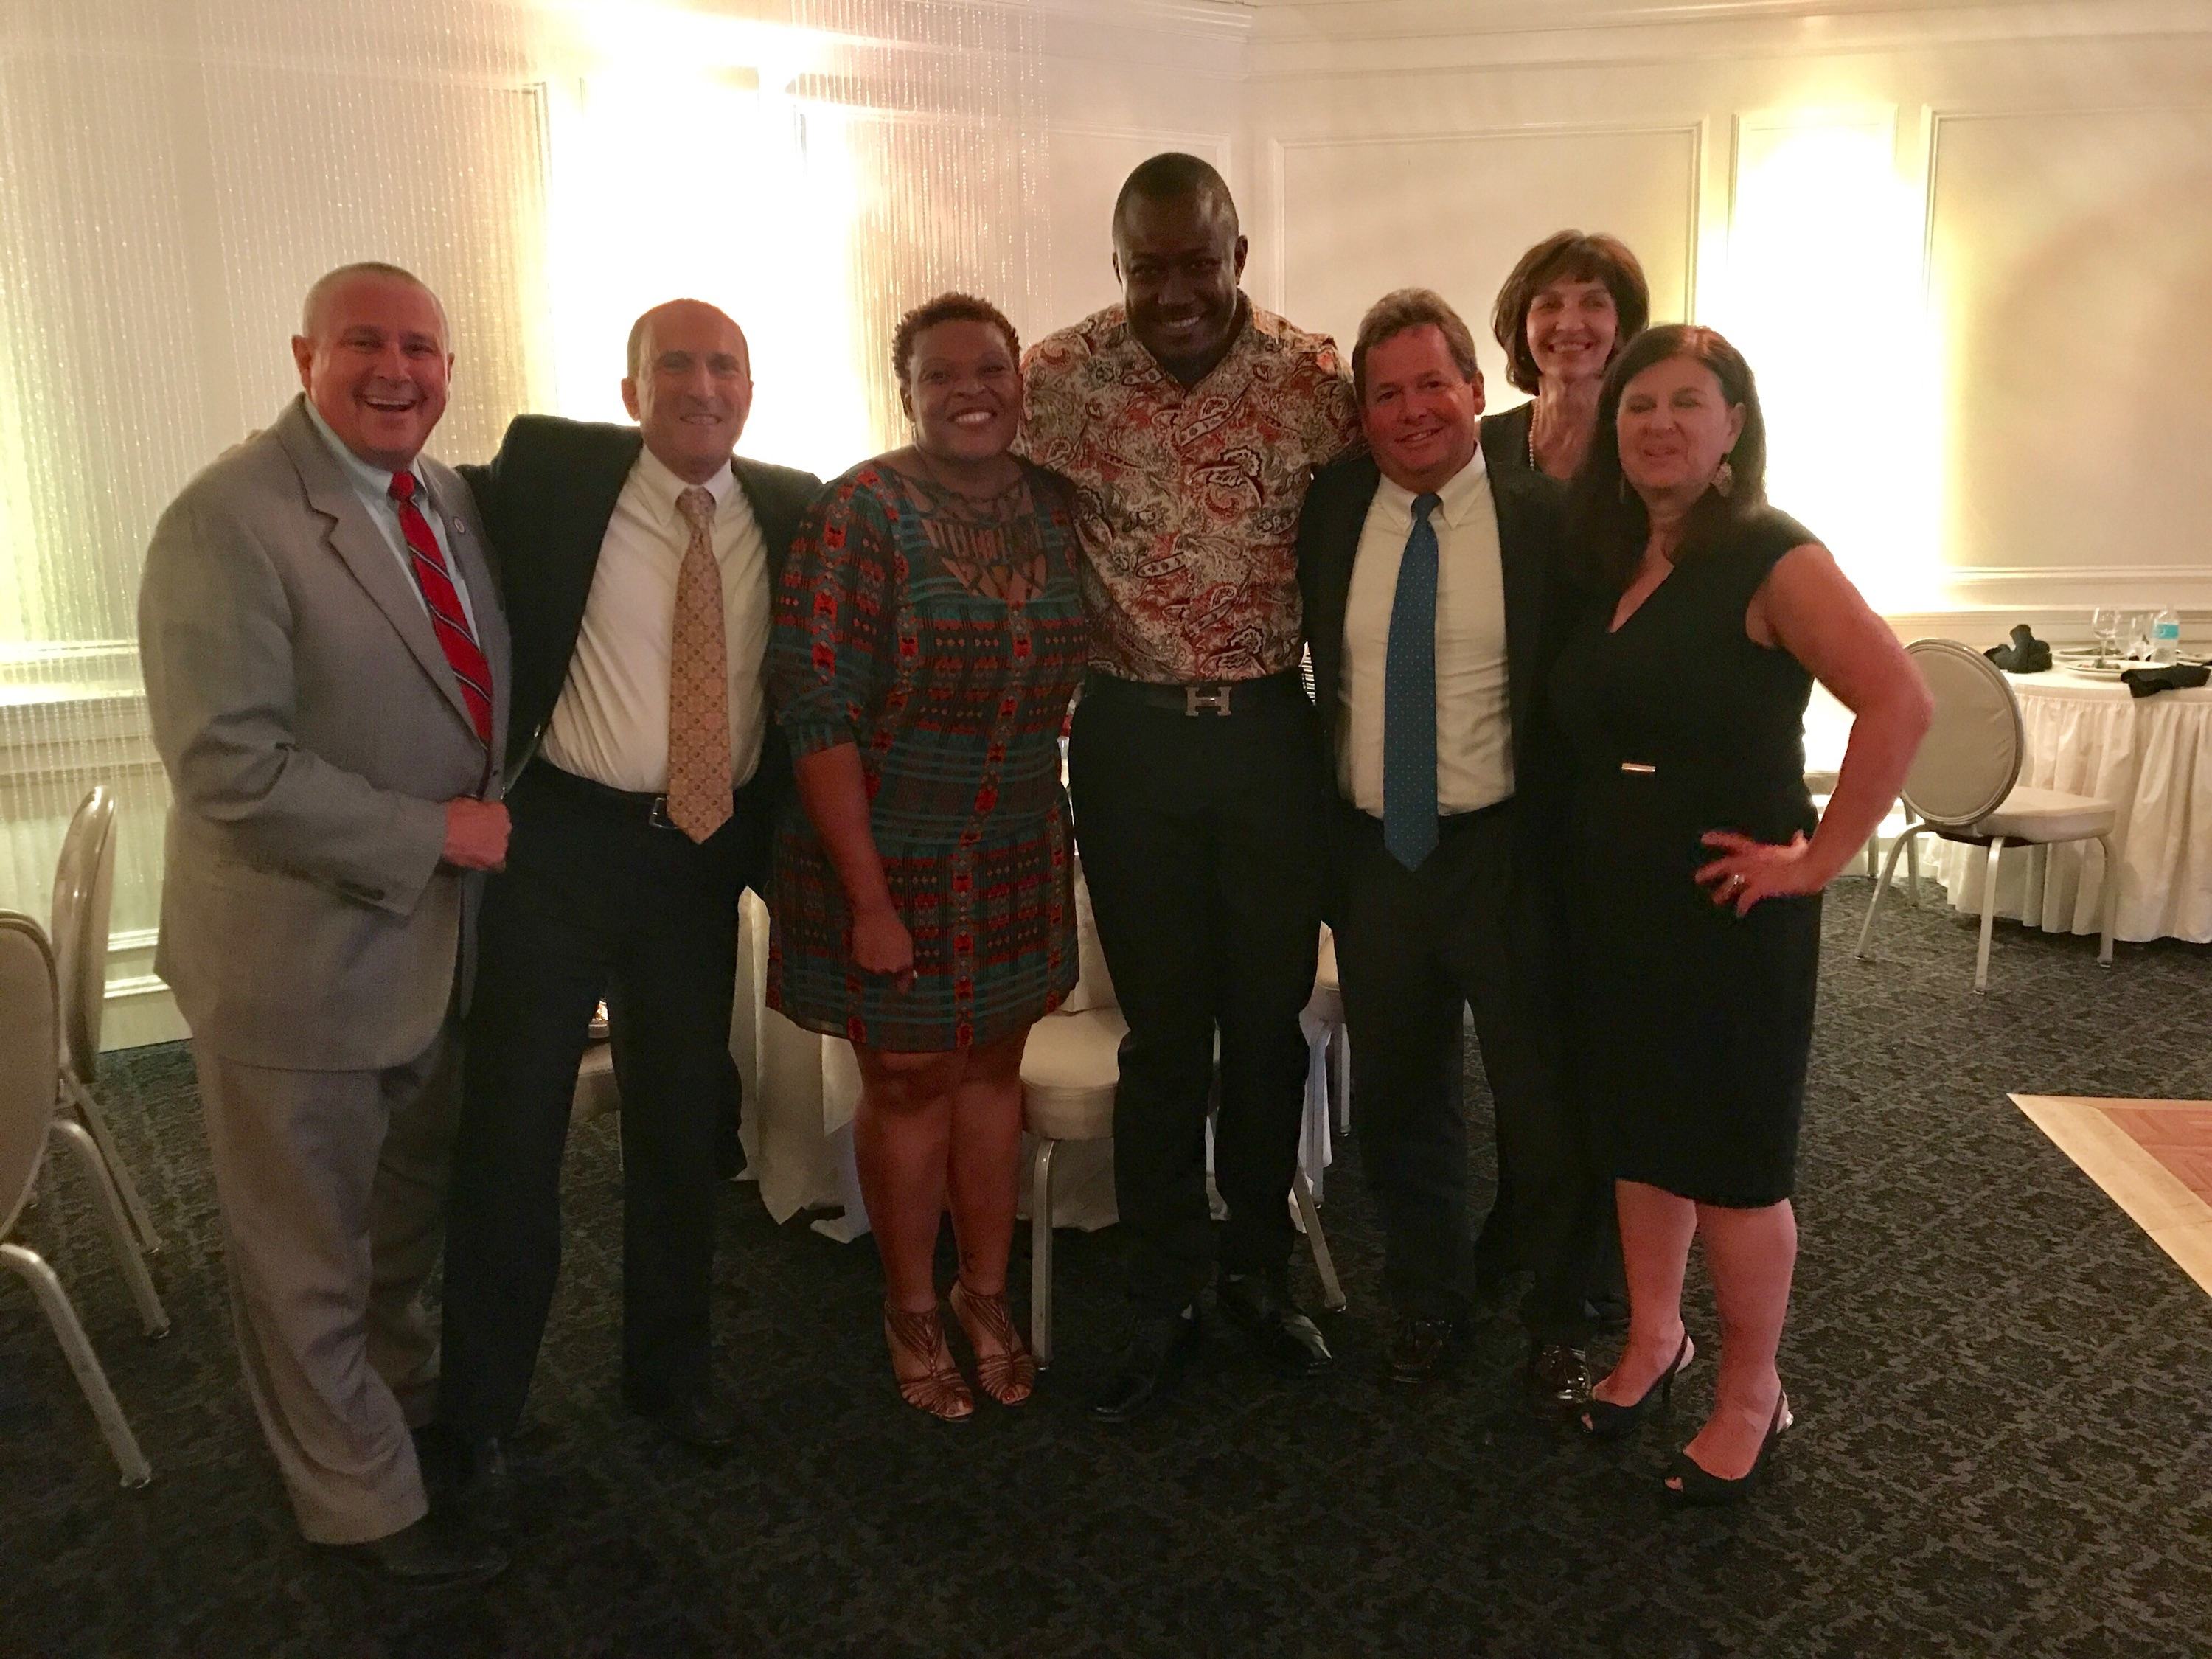 Law Firm Honored by Habitat for Humanity